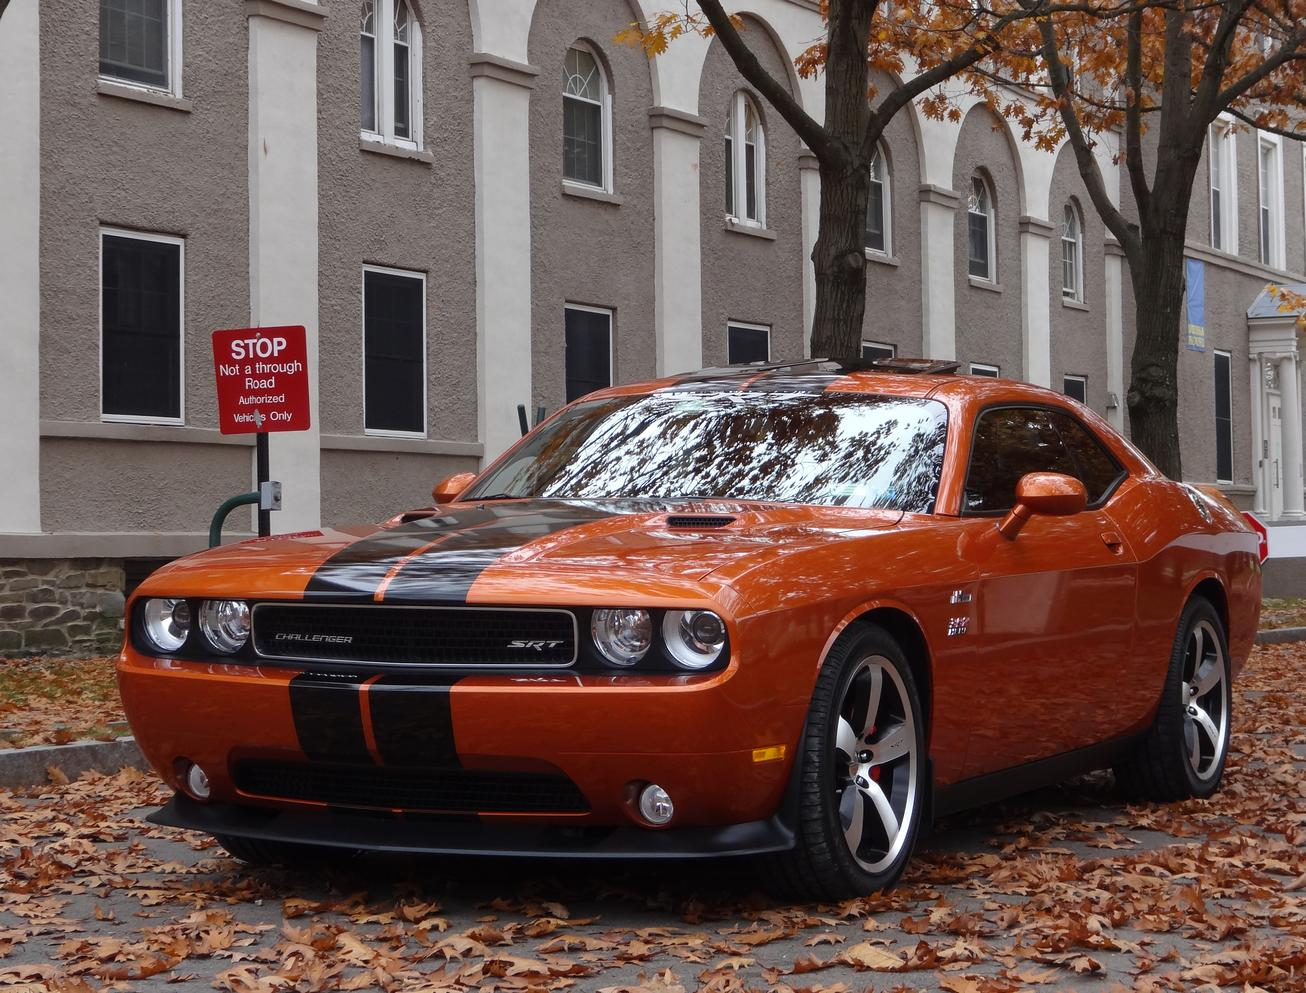 November 2012 - Ride of the Month ENTRIES!-srtfall2012-047.jpg